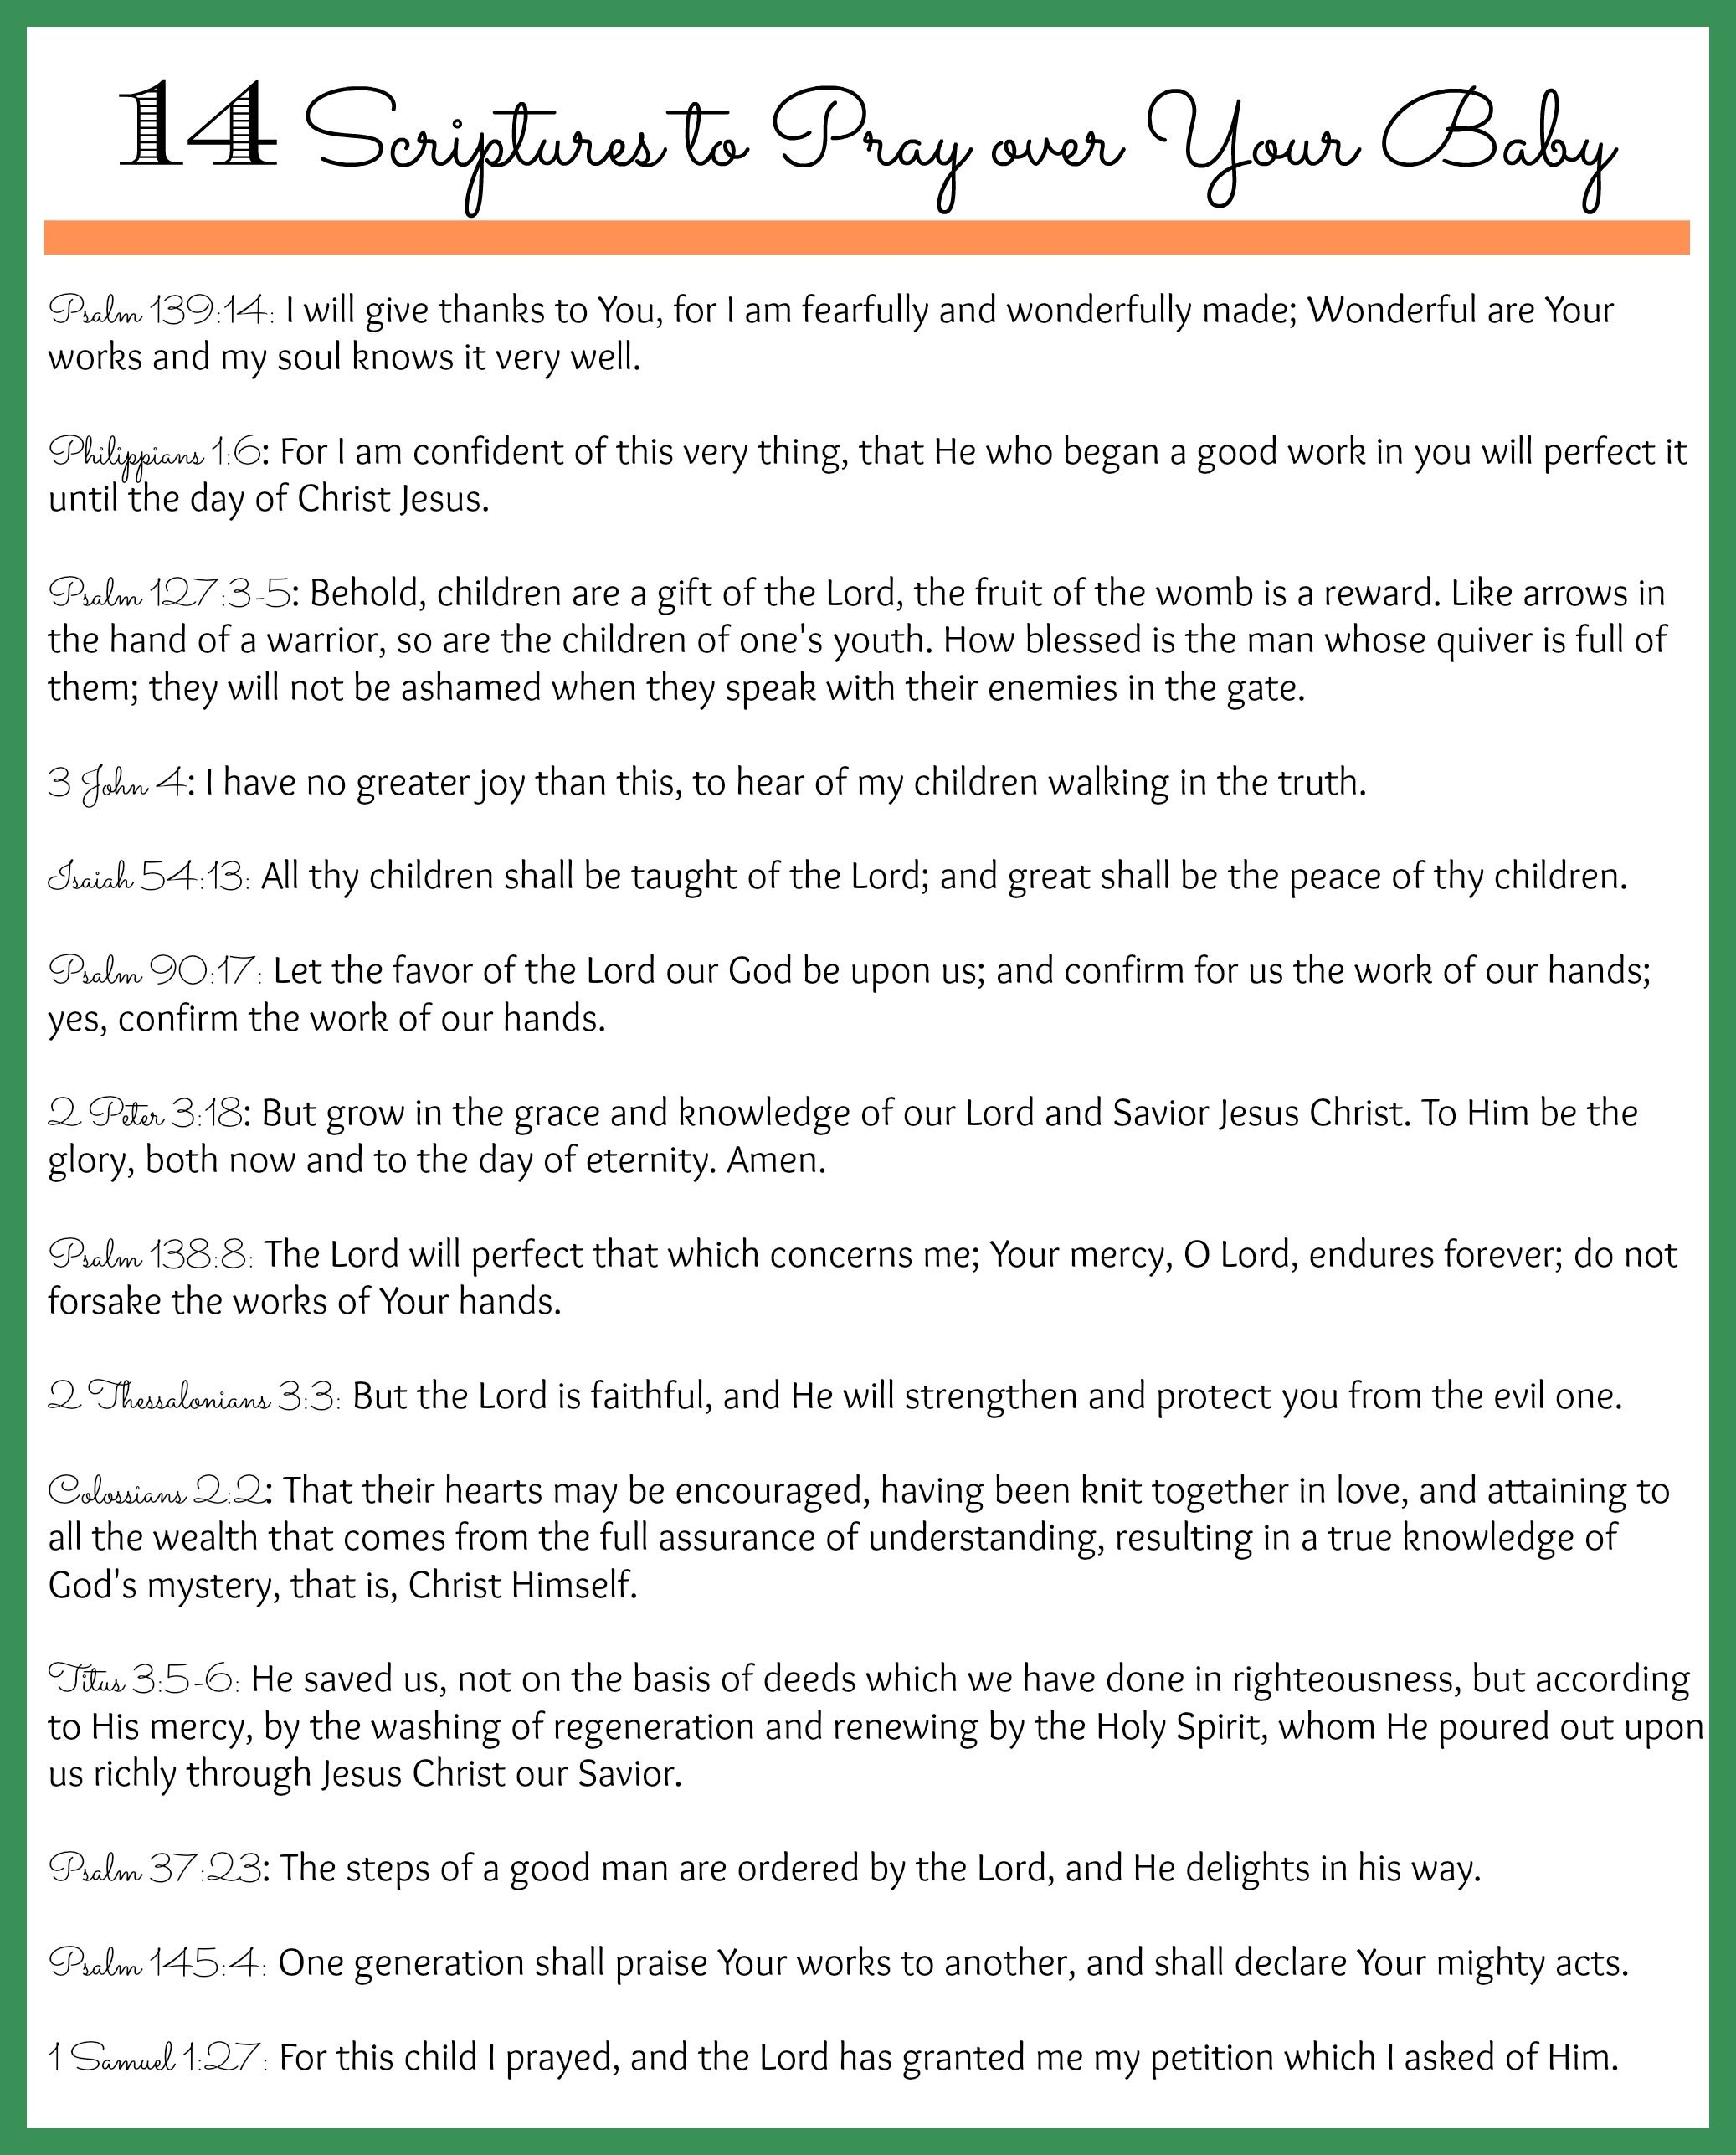 14 scriptures to pray over your unborn baby and other children 14 scriptures to pray over your unborn baby and other children too negle Choice Image